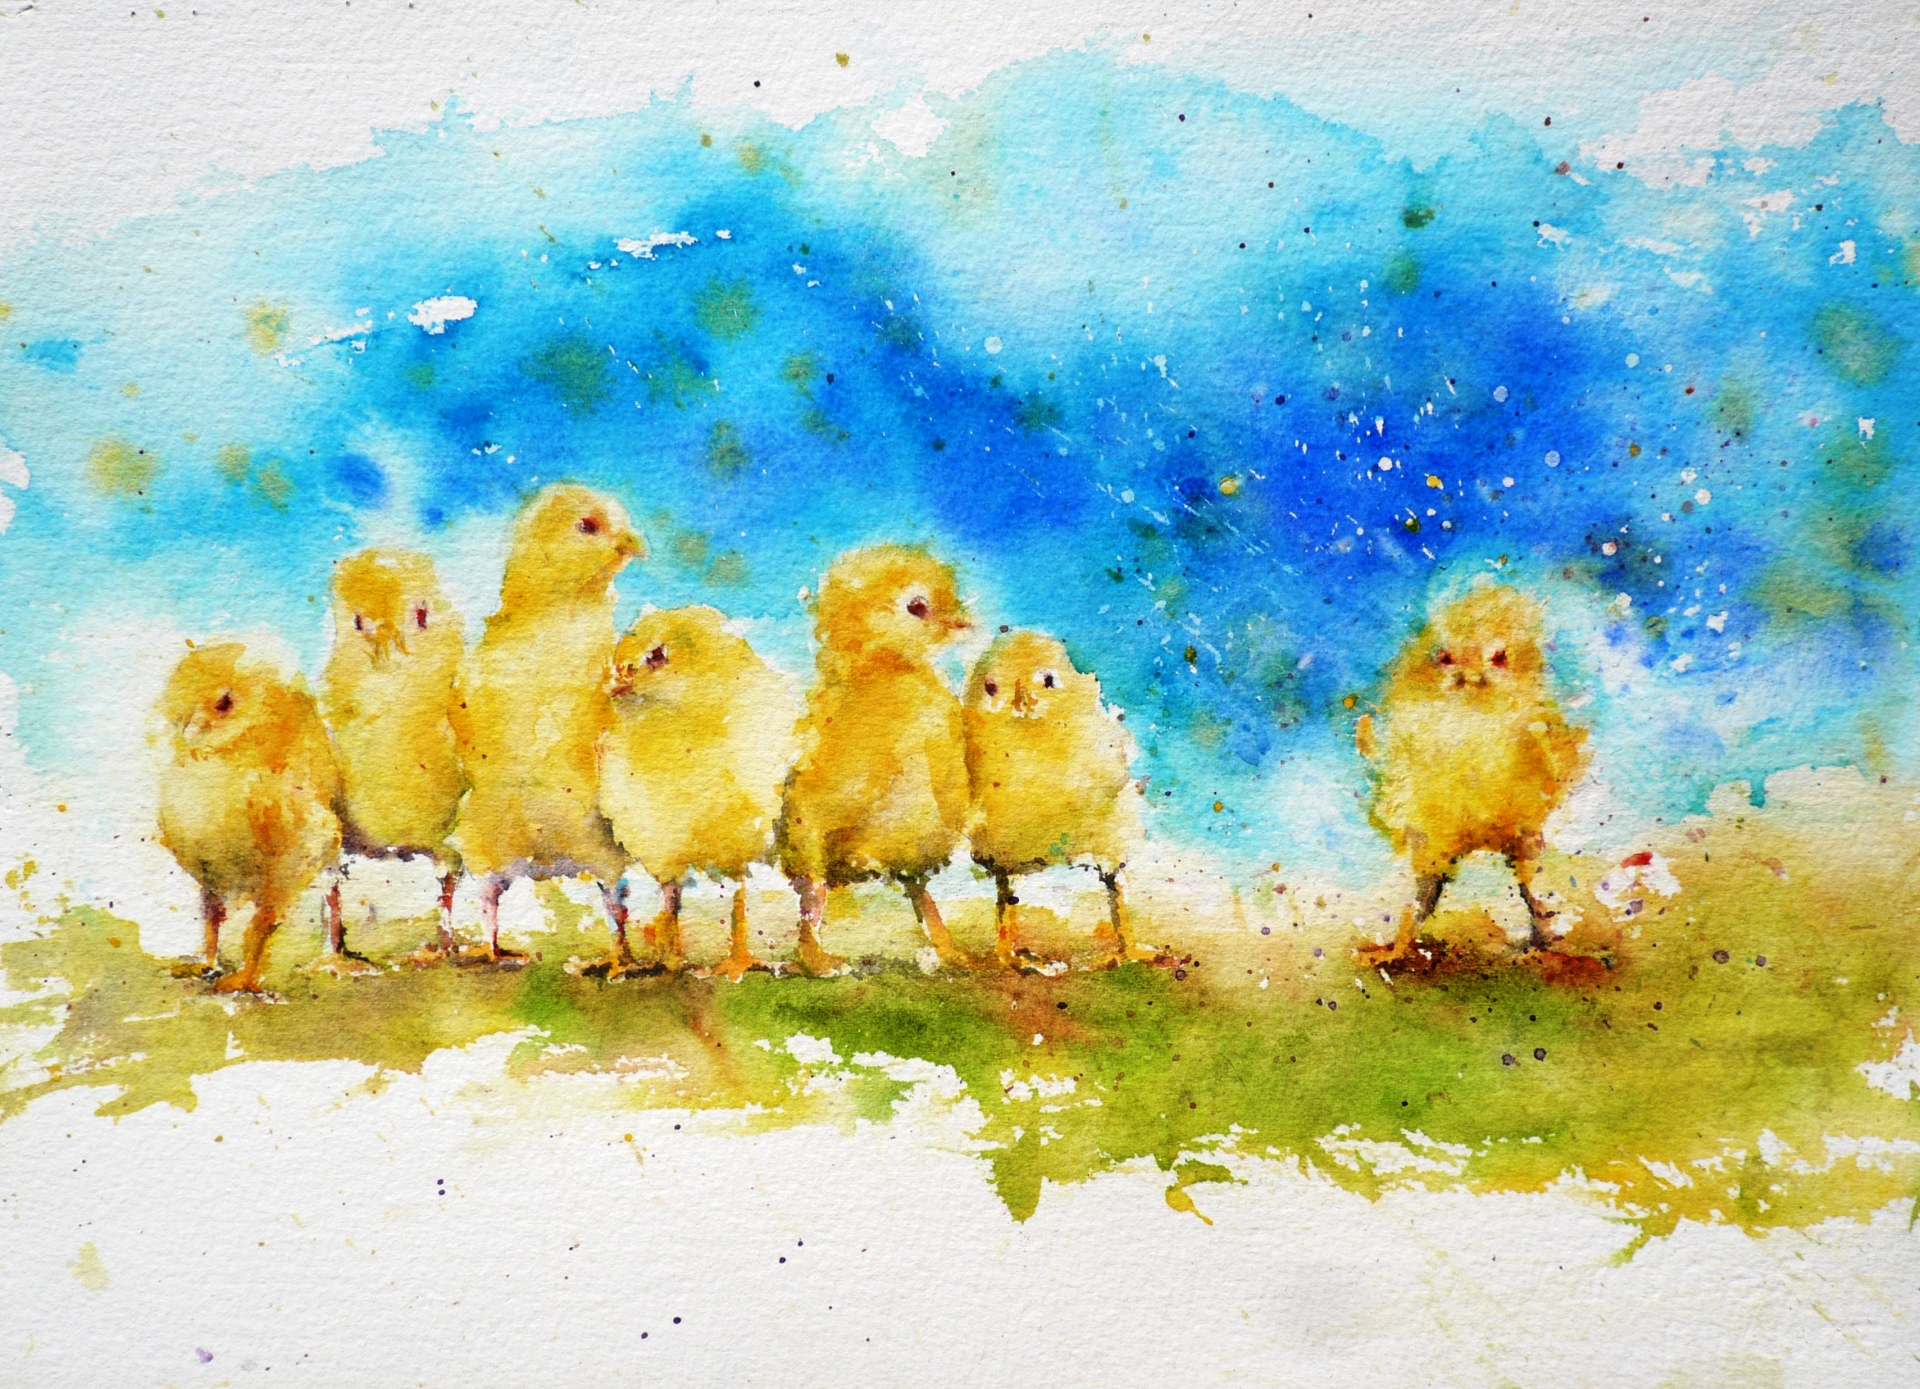 watercolor painting of six yellow chicks packed together in a line looking at another yellow chick throwing a fit